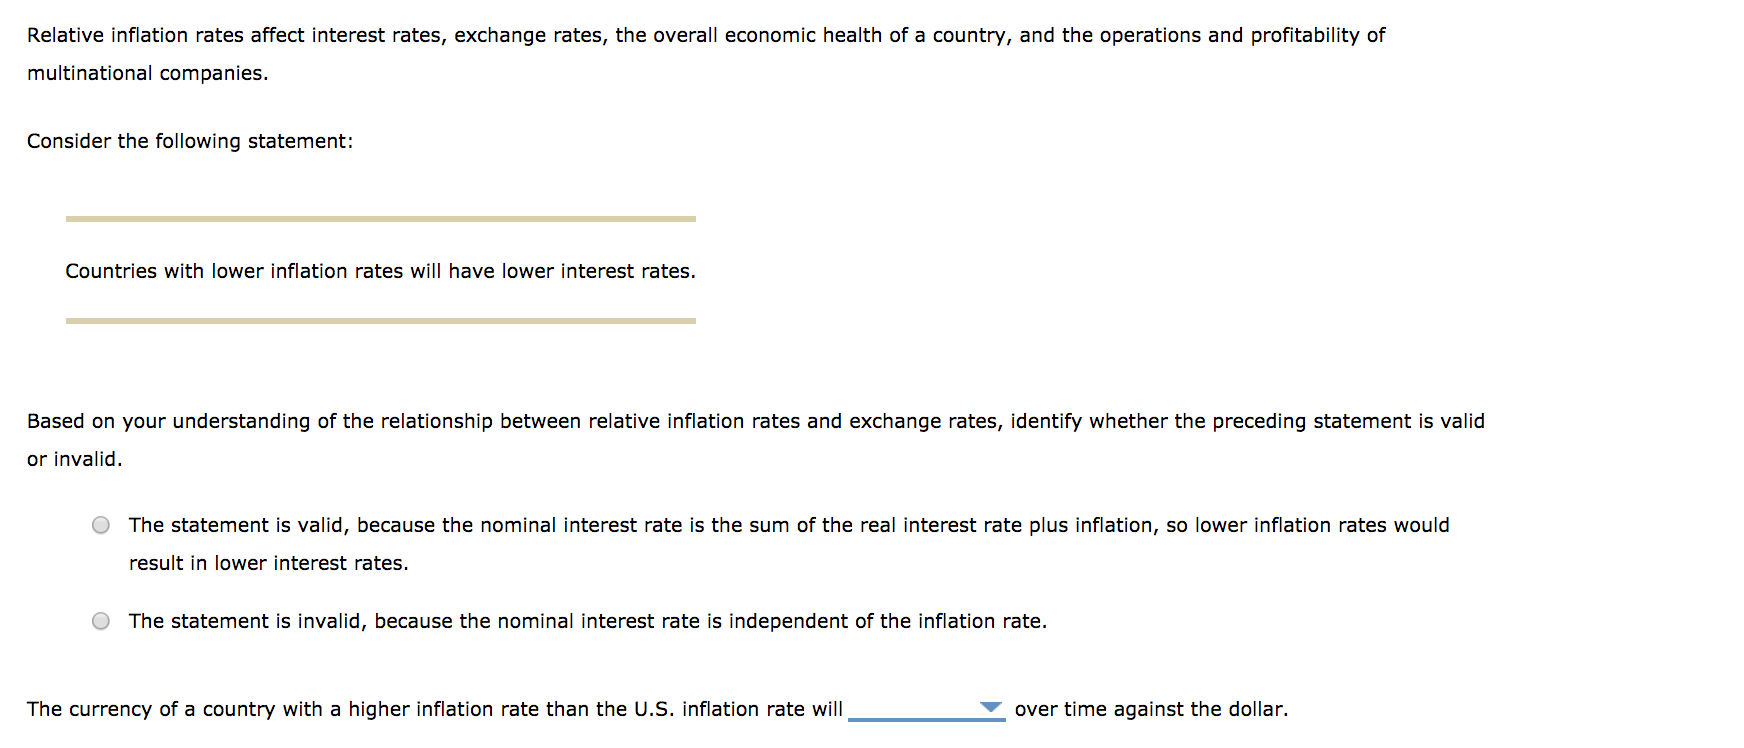 Relative inflation rates affect interest rates, exchange rates, the overall economic health of a country, and the operations and profitability of multinational companies. Consider the following statement: Countries with lower inflation rates will have lower interest rates. Based on your understanding of the relationship between relative inflation rates and exchange rates, identify whether the preceding statement is valid or invalid. O The statement is valid, because the nominal interest rate is the sum of the real interest rate plus inflation, so lower inflation rates would result in lower interest rates O The statement is invalid, because the nominal interest rate is independent of the inflation rate. The currency of a country with a higher inflation rate than the U.S. inflation rate will over time against the dollar.